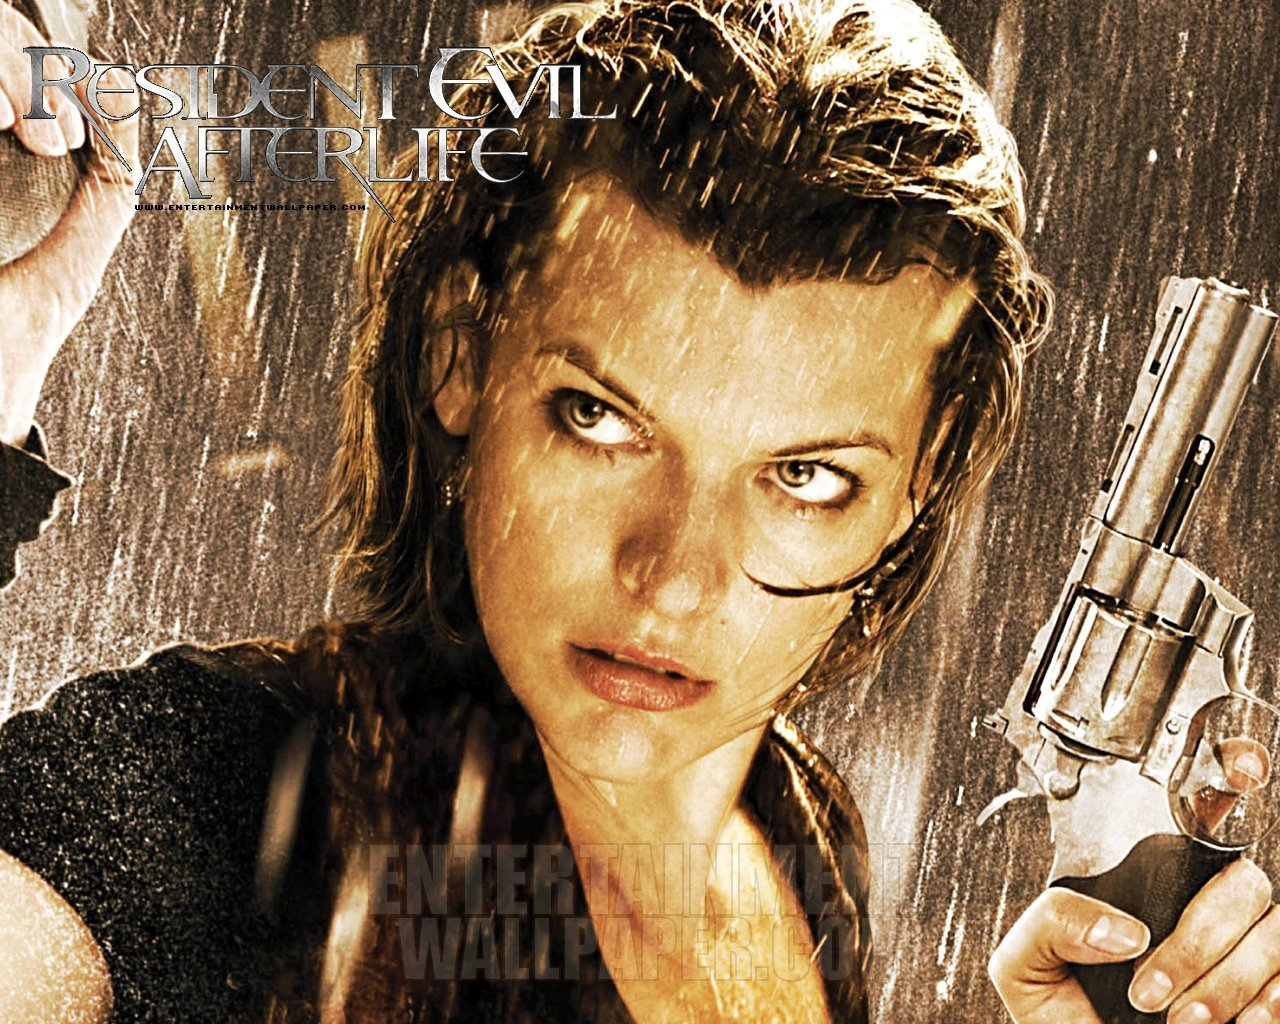 Resident Evil Afterlife 2010 Upcoming Movies Wallpaper 12940811 Fanpop